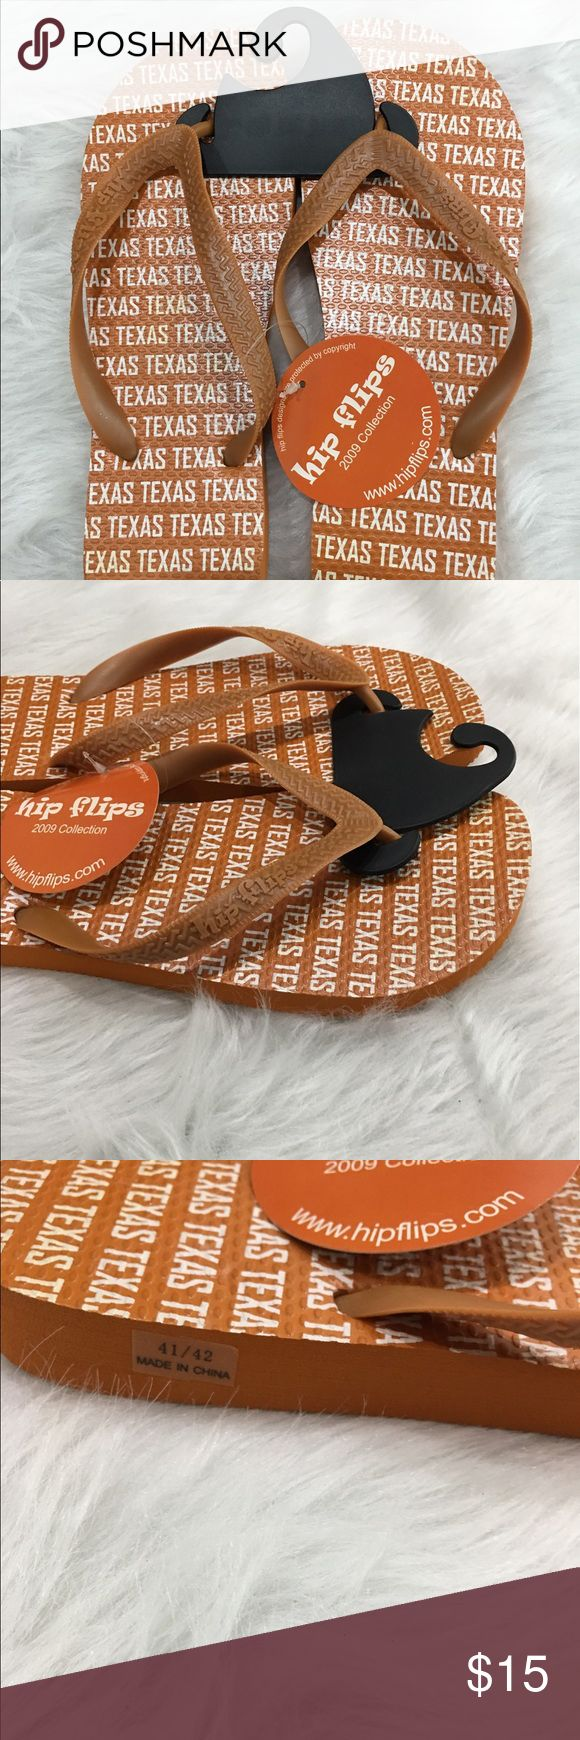 Hip flips university of Texas sandals NWT sz 10 Hip flips university of Texas Long horns flip flops size 10, they are new with tag. The shoes have Texas wording allover. They come from a smoke free home. hip flips Shoes Sandals & Flip-Flops